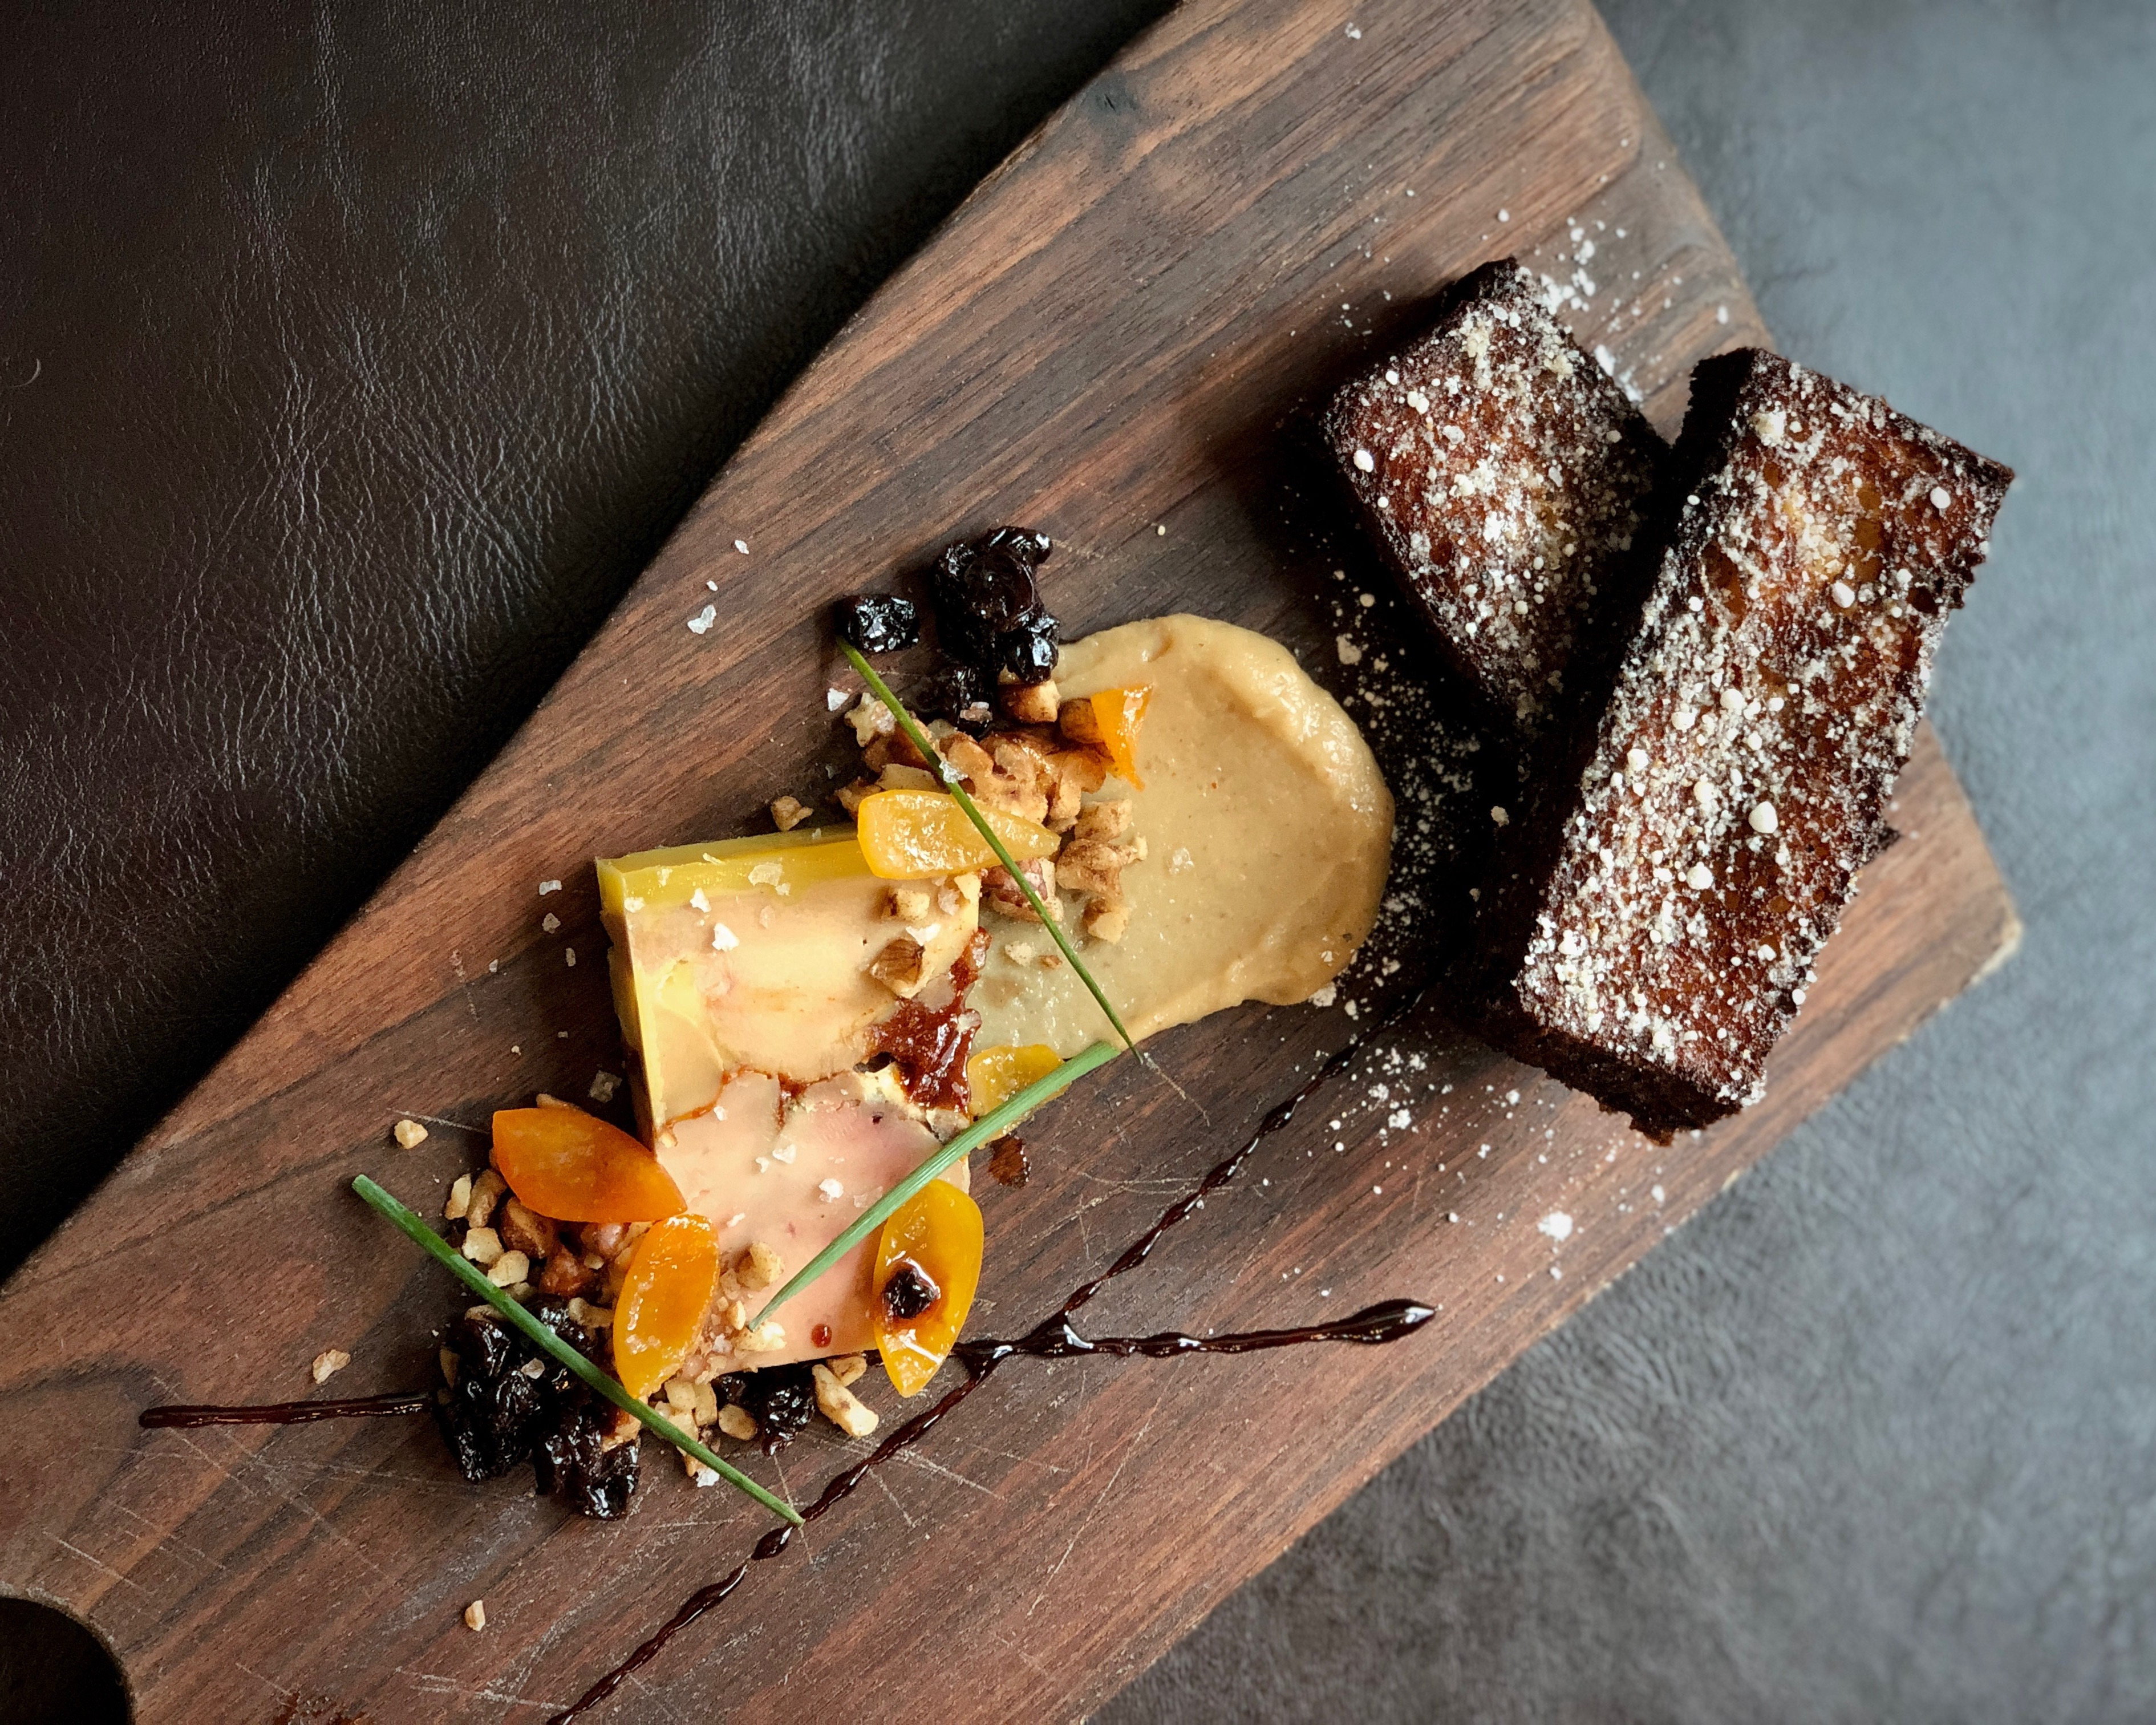 Foie gras torchon is plated on a wooden board and garnished with flowers at Le Pigeon